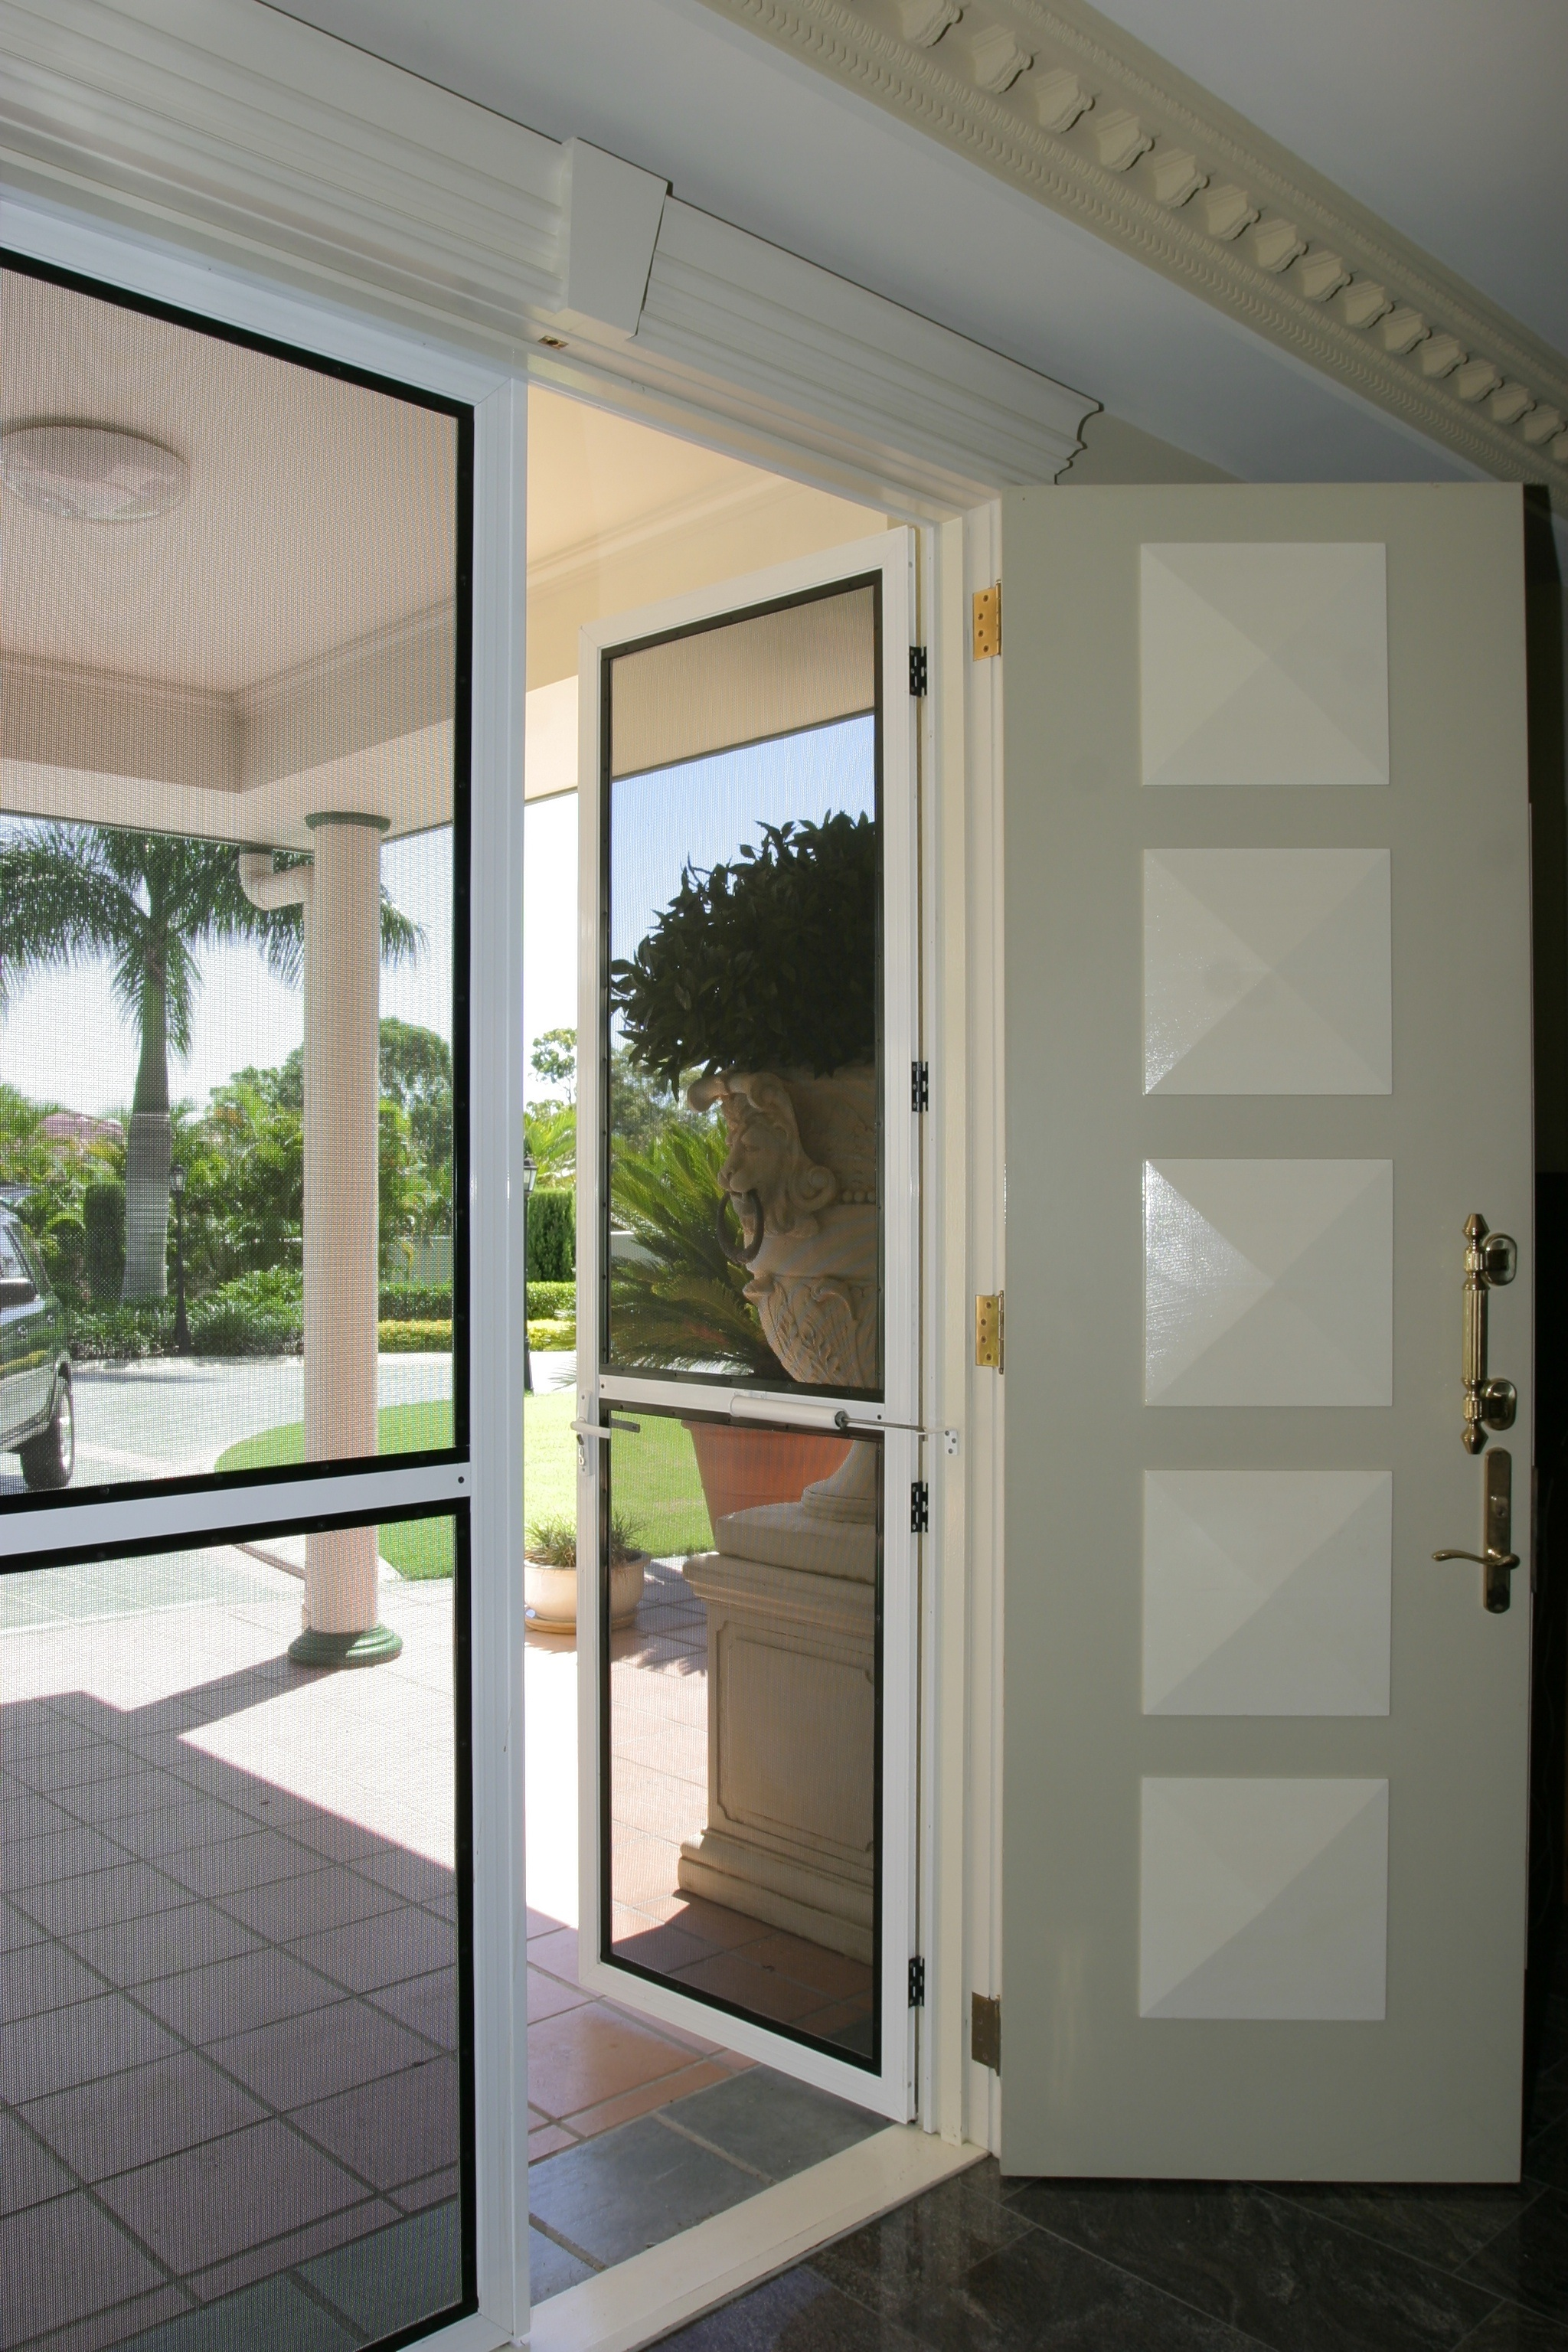 Standard Door, White, Hinged Open